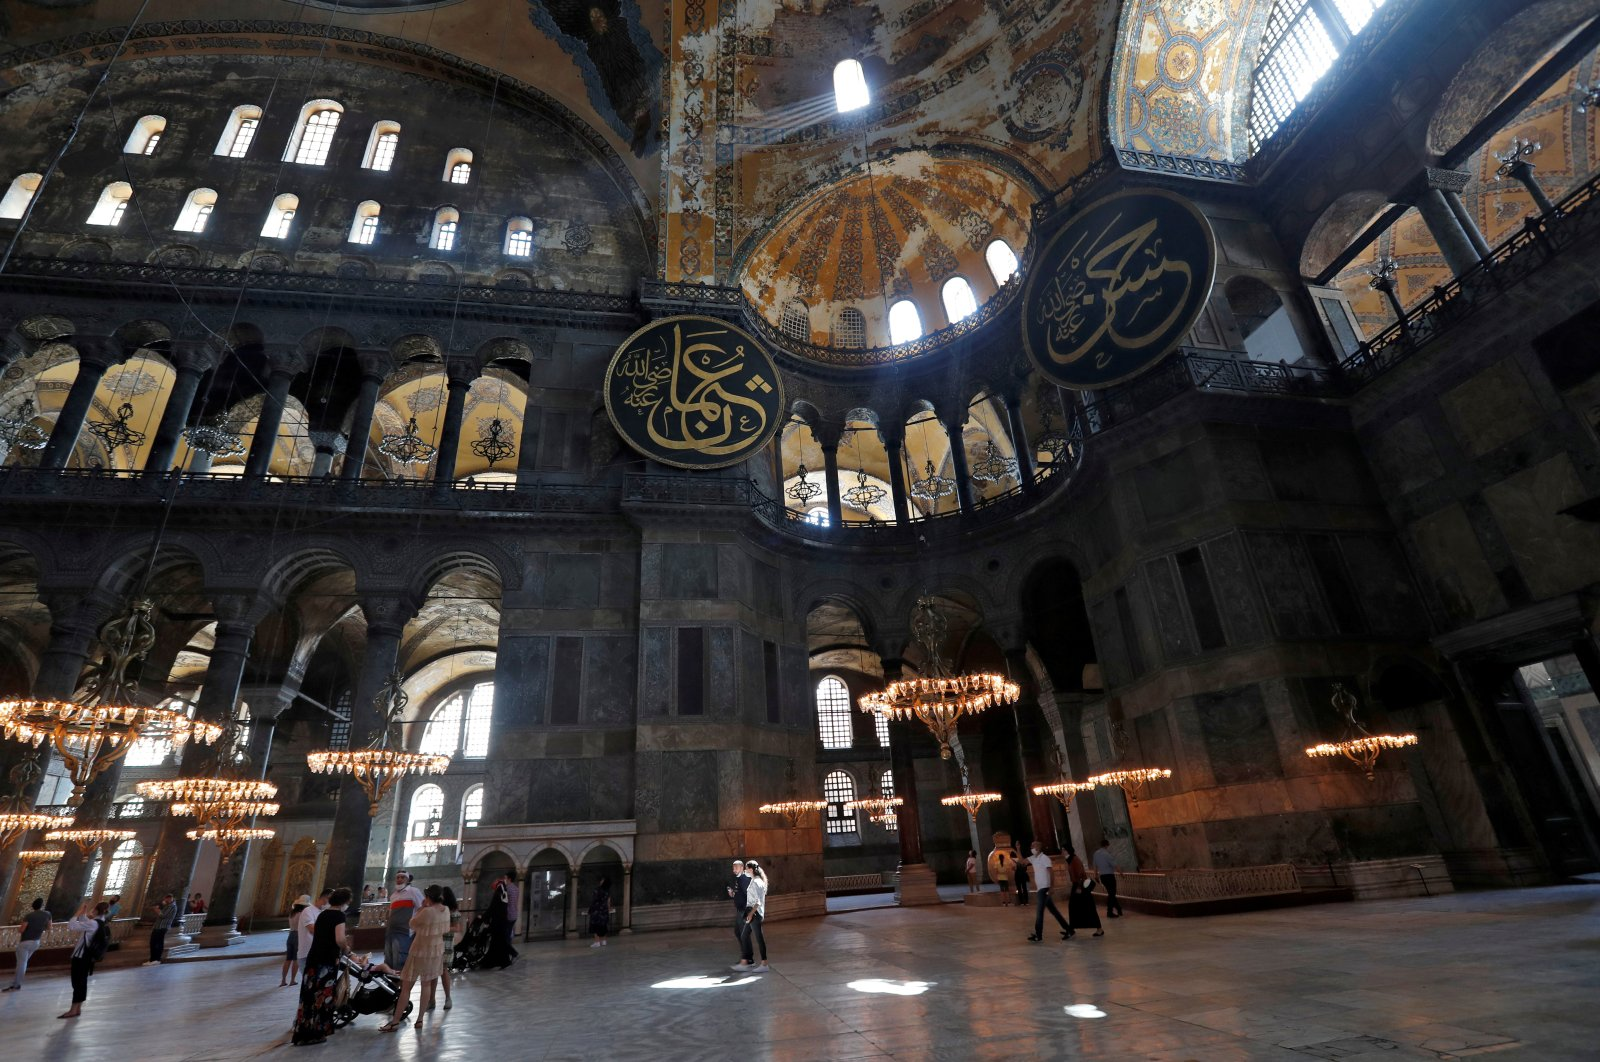 People visit Hagia Sophia or Ayasofya, a UNESCO World Heritage Site, which was a Byzantine cathedral before being converted into a mosque and is now a museum, in Istanbul, Turkey, June 30, 2020. (Reuters File Photo)